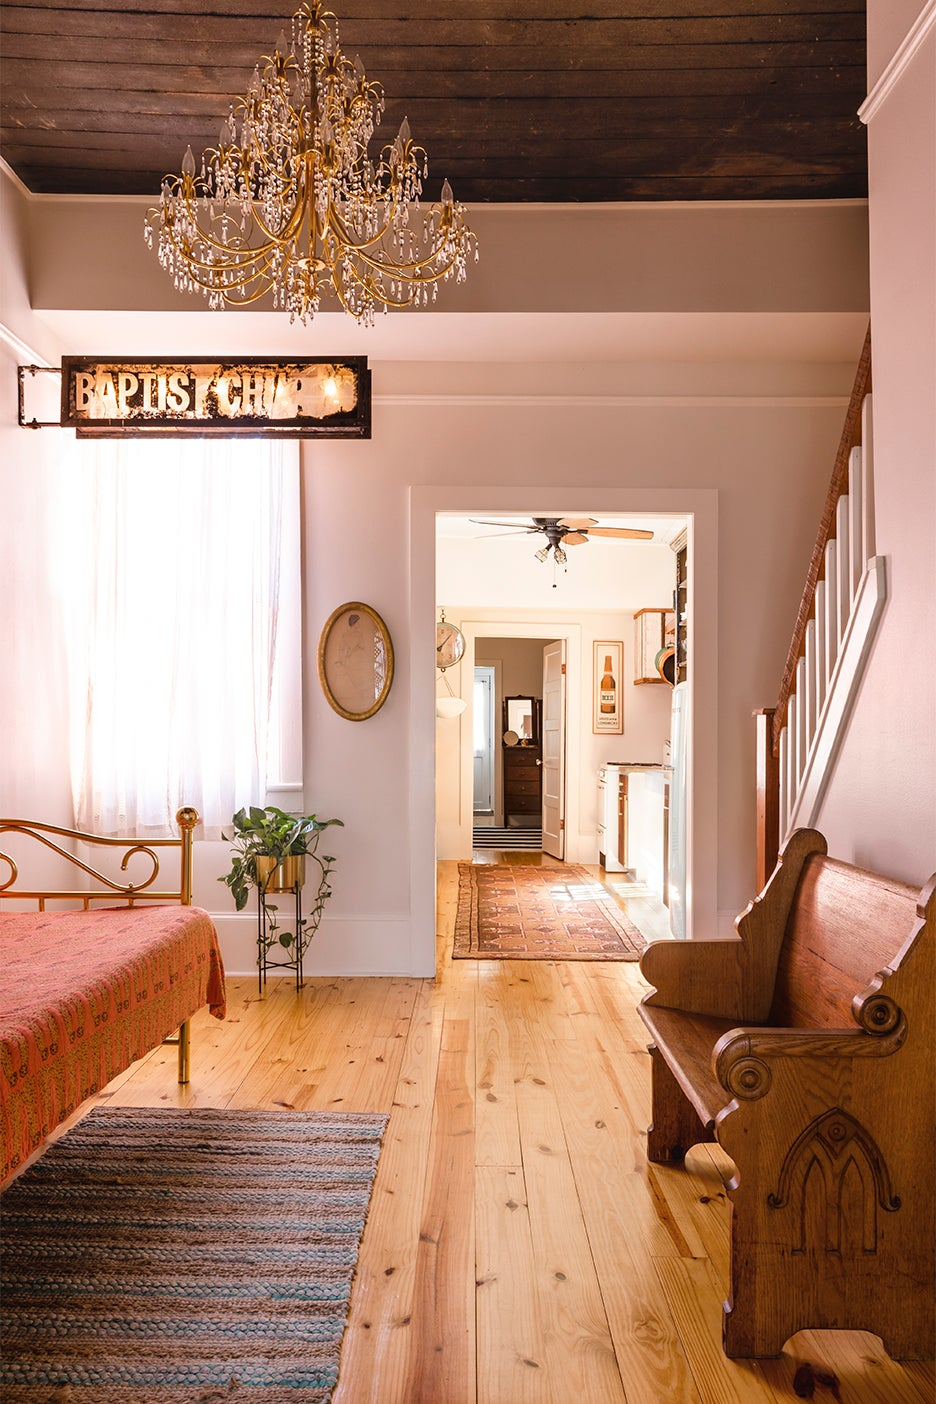 Entryway with vintage church sign